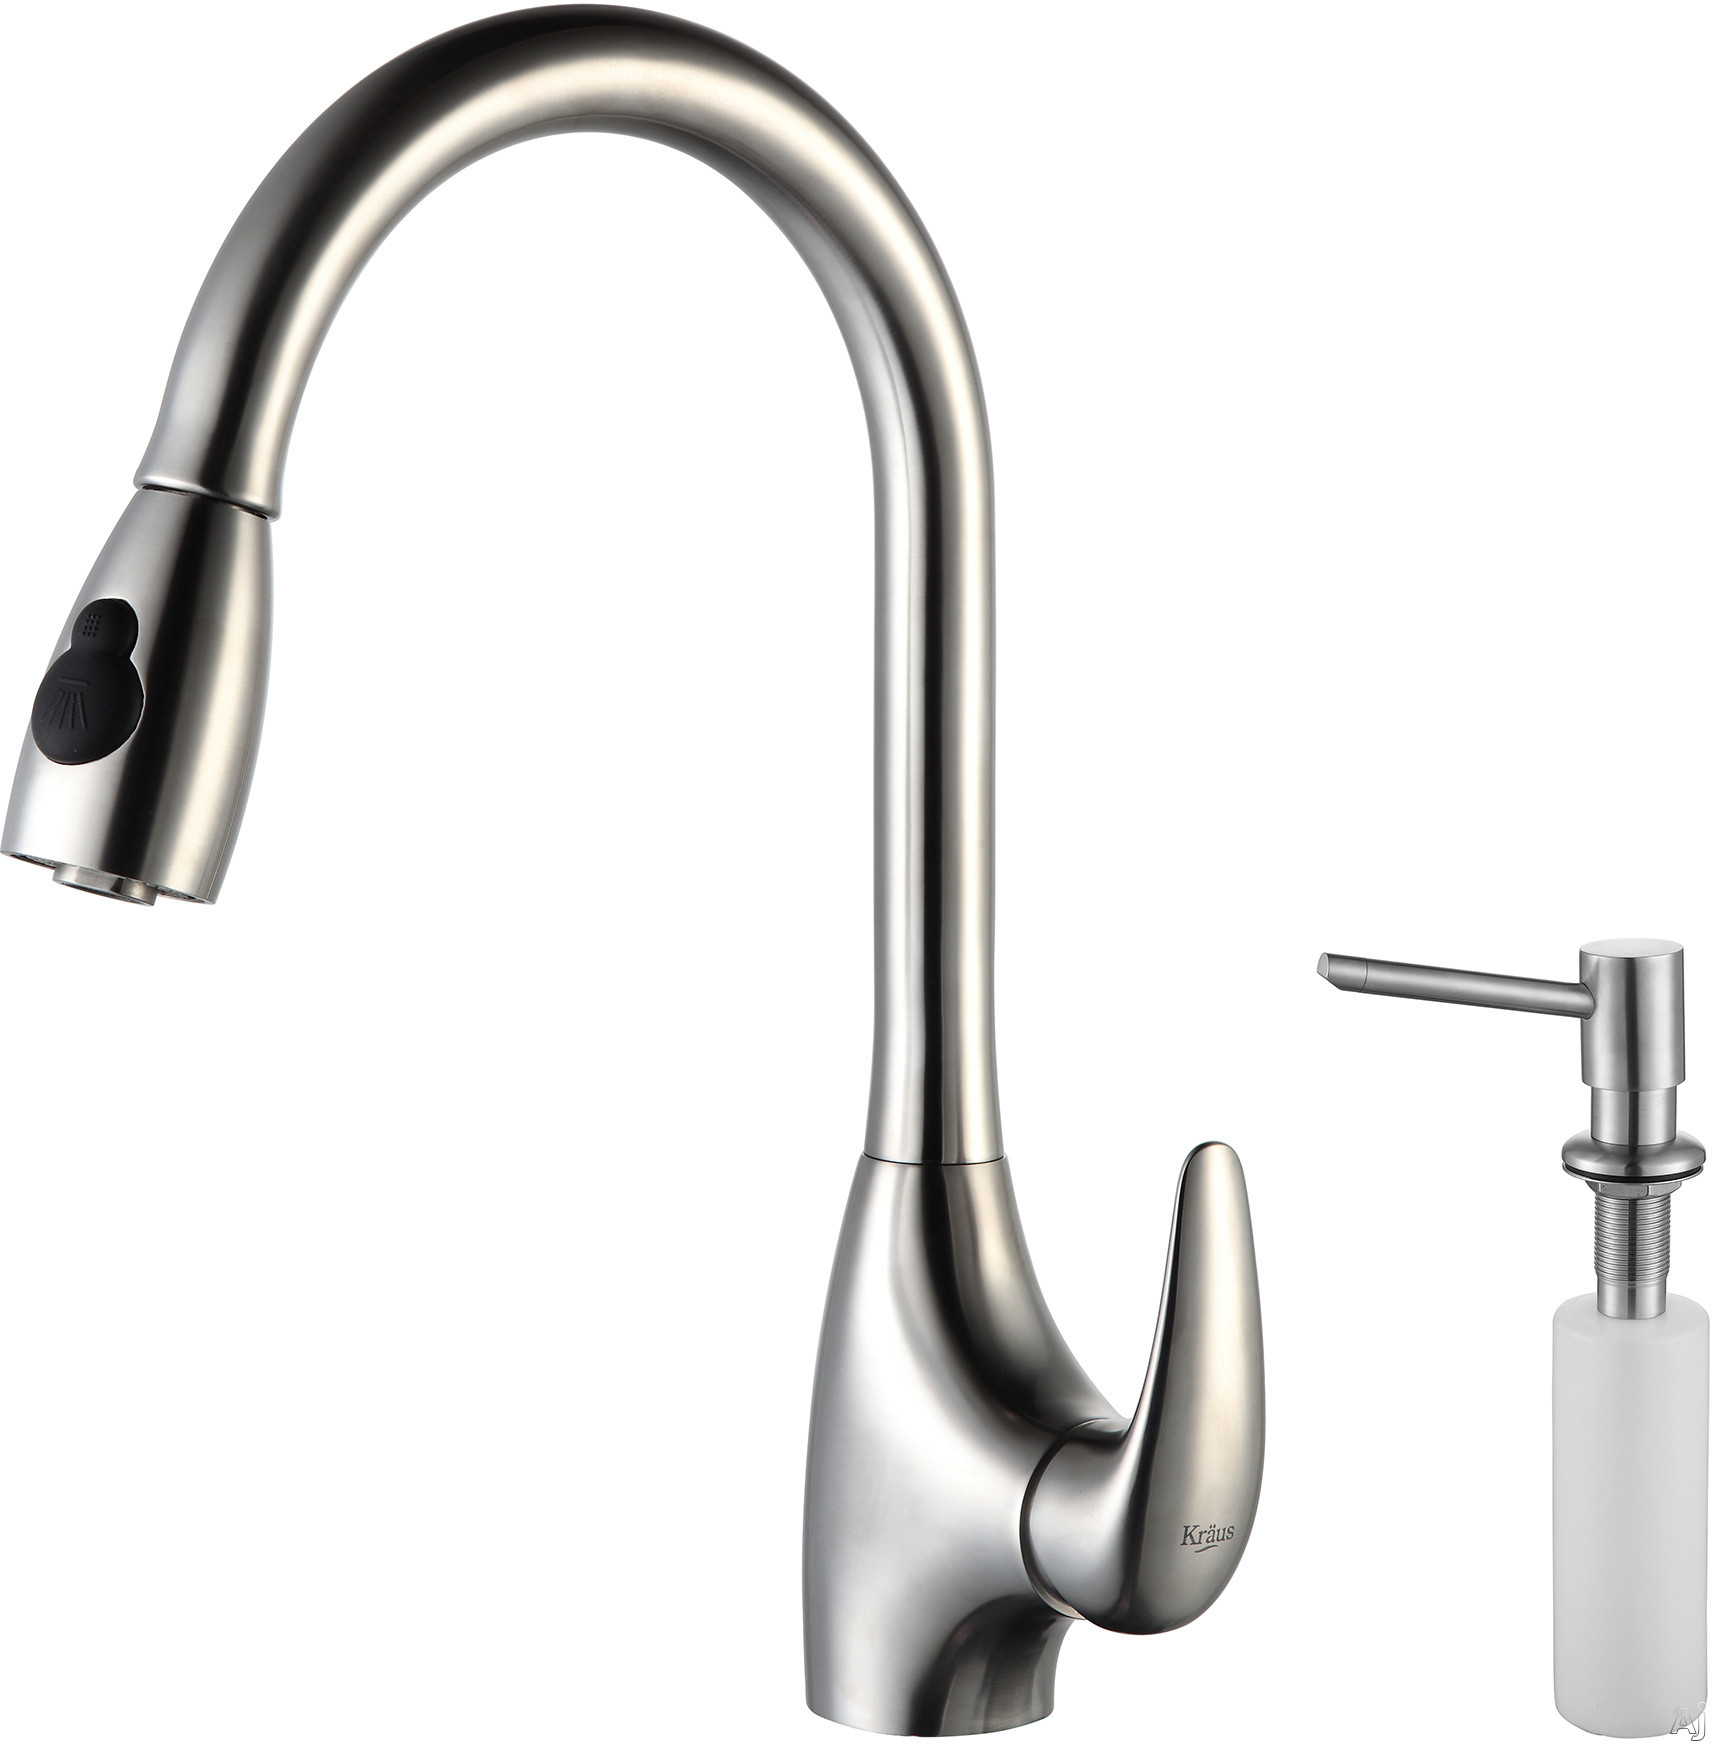 Kraus Kpf2170sd20 Single Lever Pull Out Kitchen Faucet With Hi Arc Dual Stainless Steel Pull